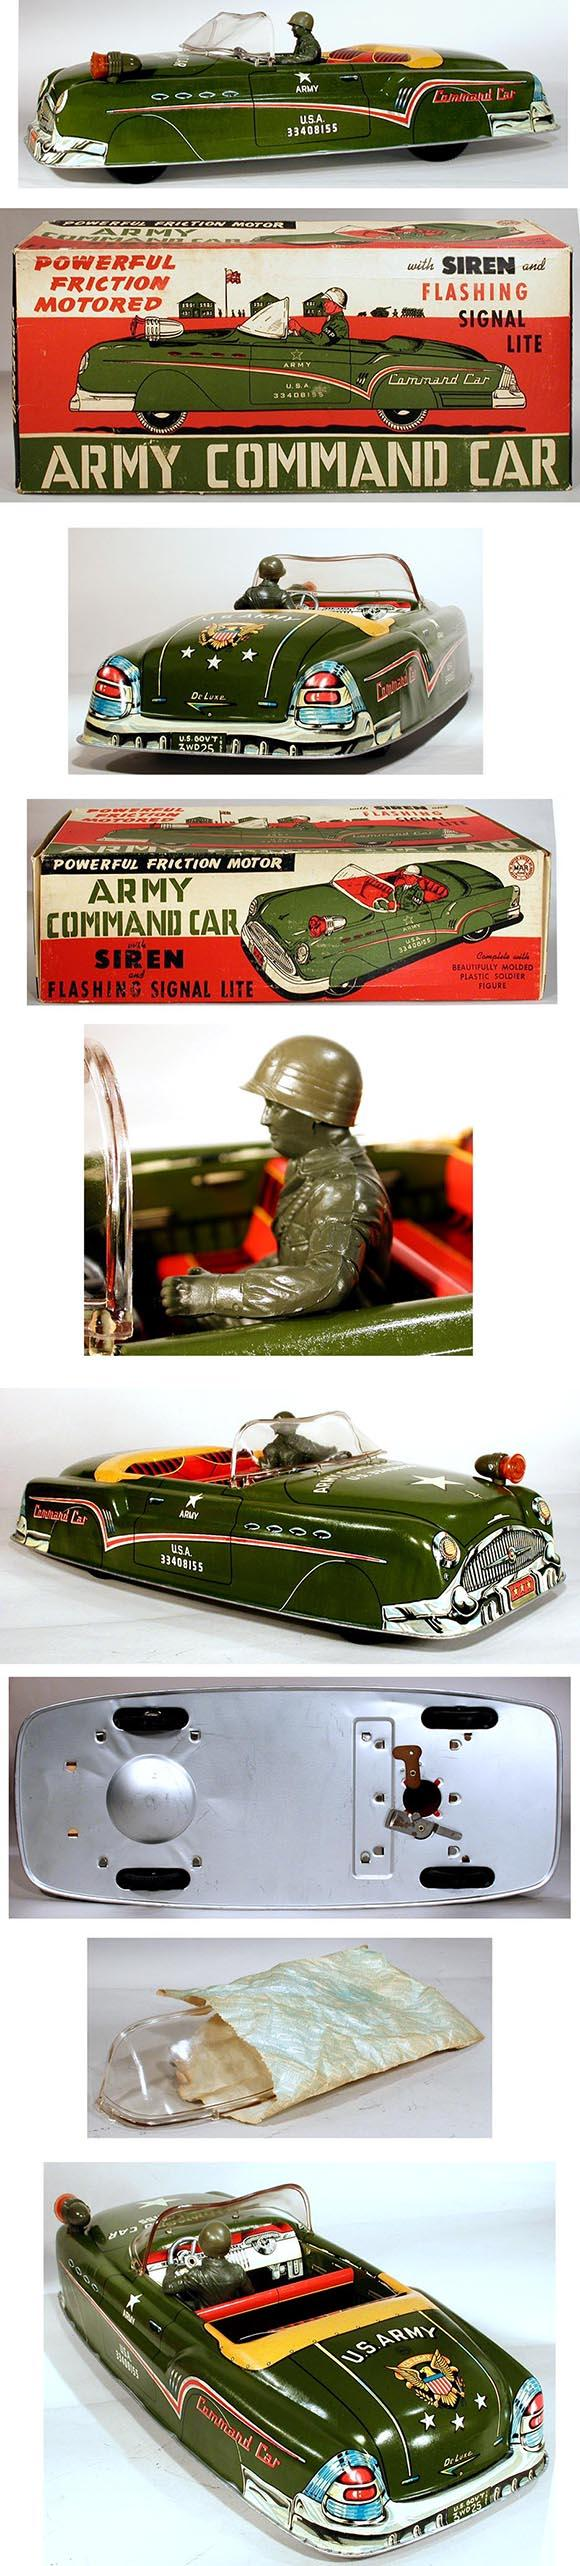 1957 Marx, Army Command Car with Siren & Flashing Signal Light in Original Box